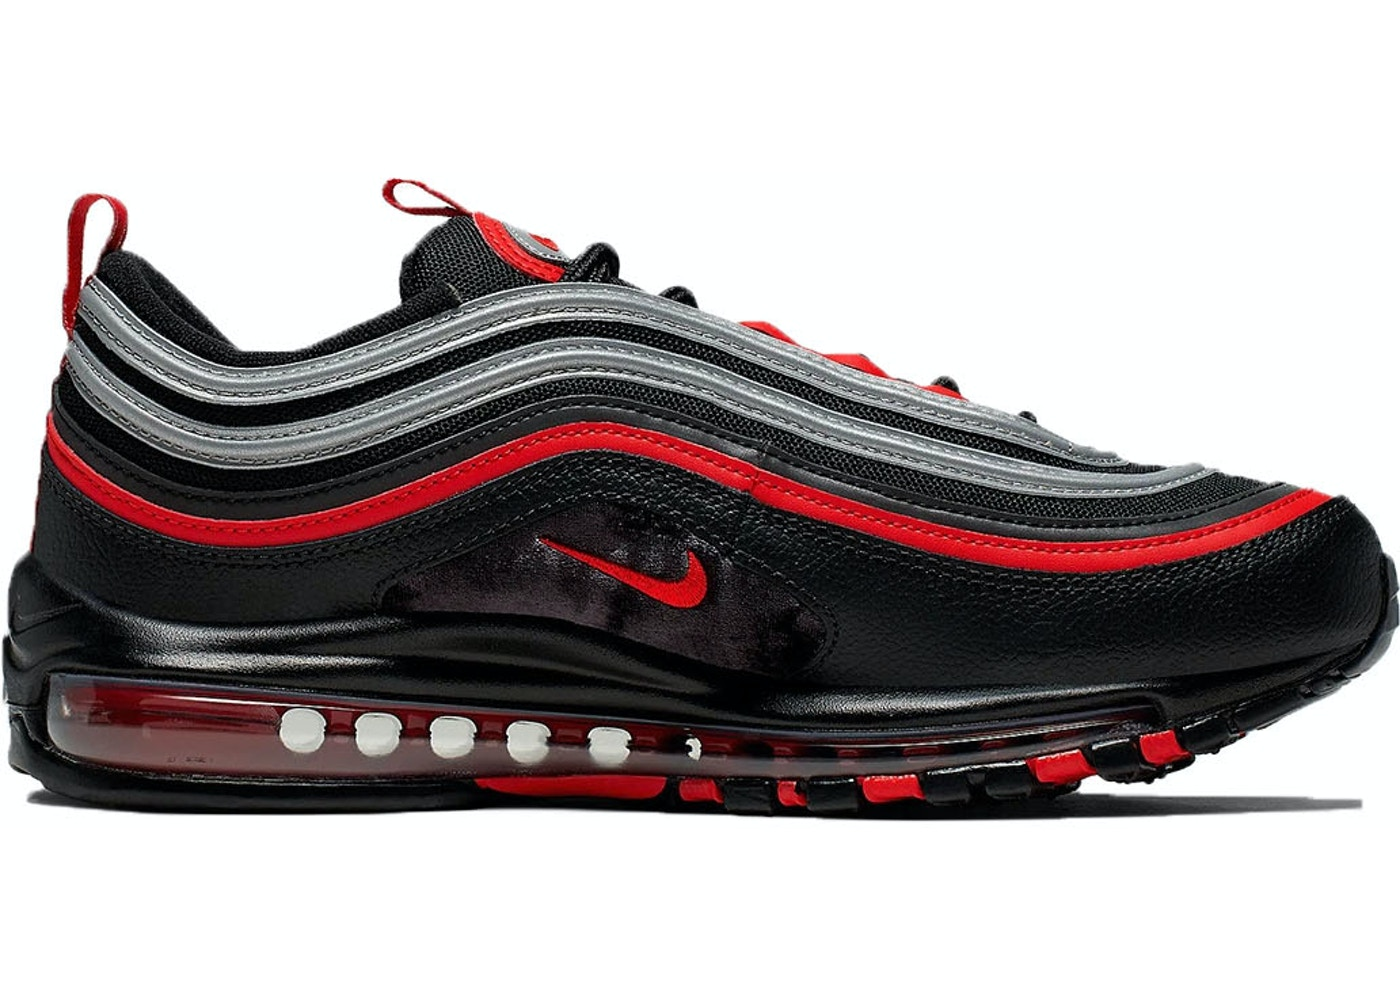 Undefeated x Nike Air Max 97 Sneaker Collaboration Release